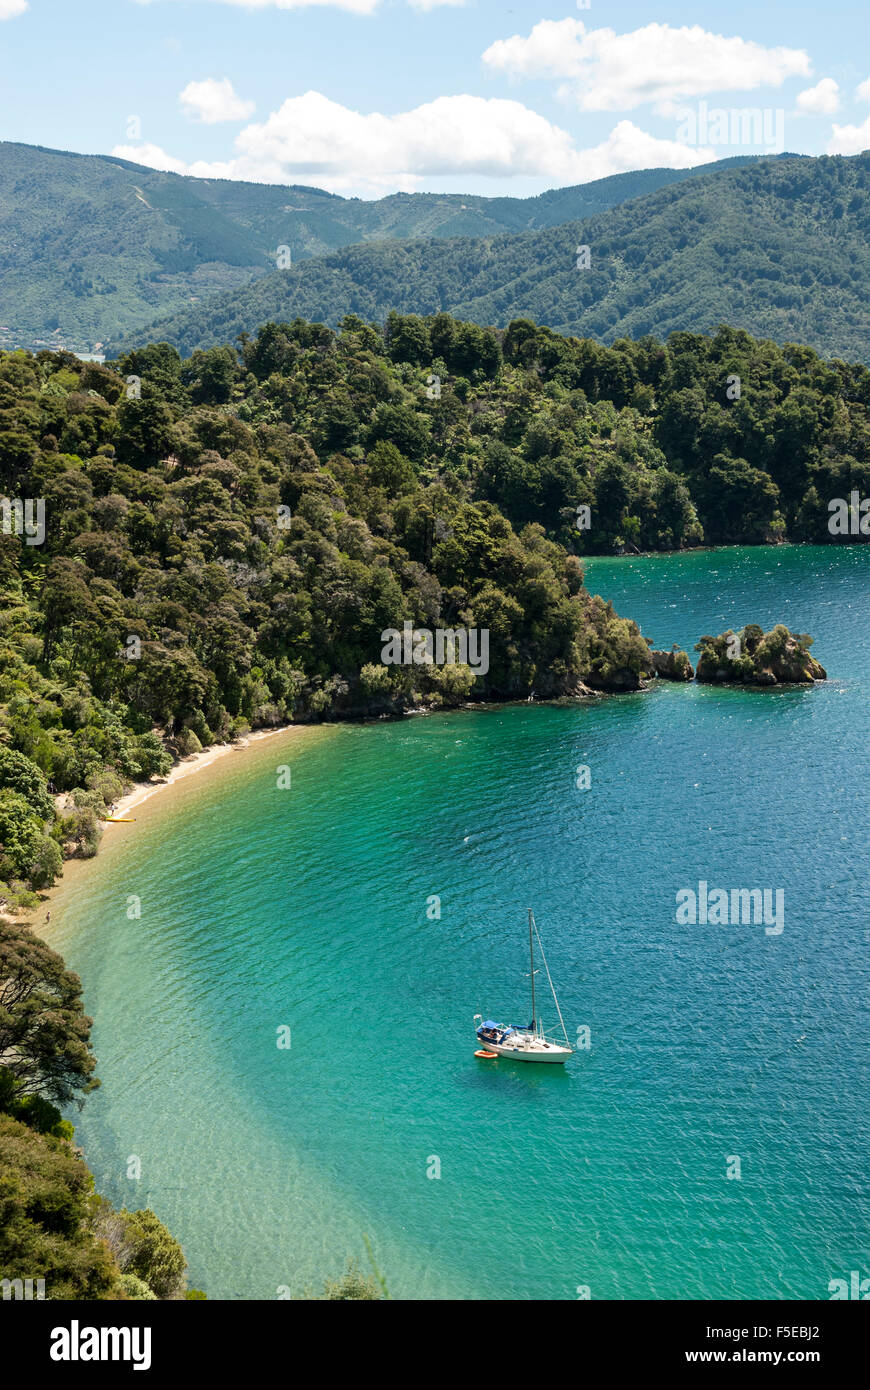 Okiwa Bay, Marlborough Sounds, île du Sud, Nouvelle-Zélande, Pacifique Photo Stock